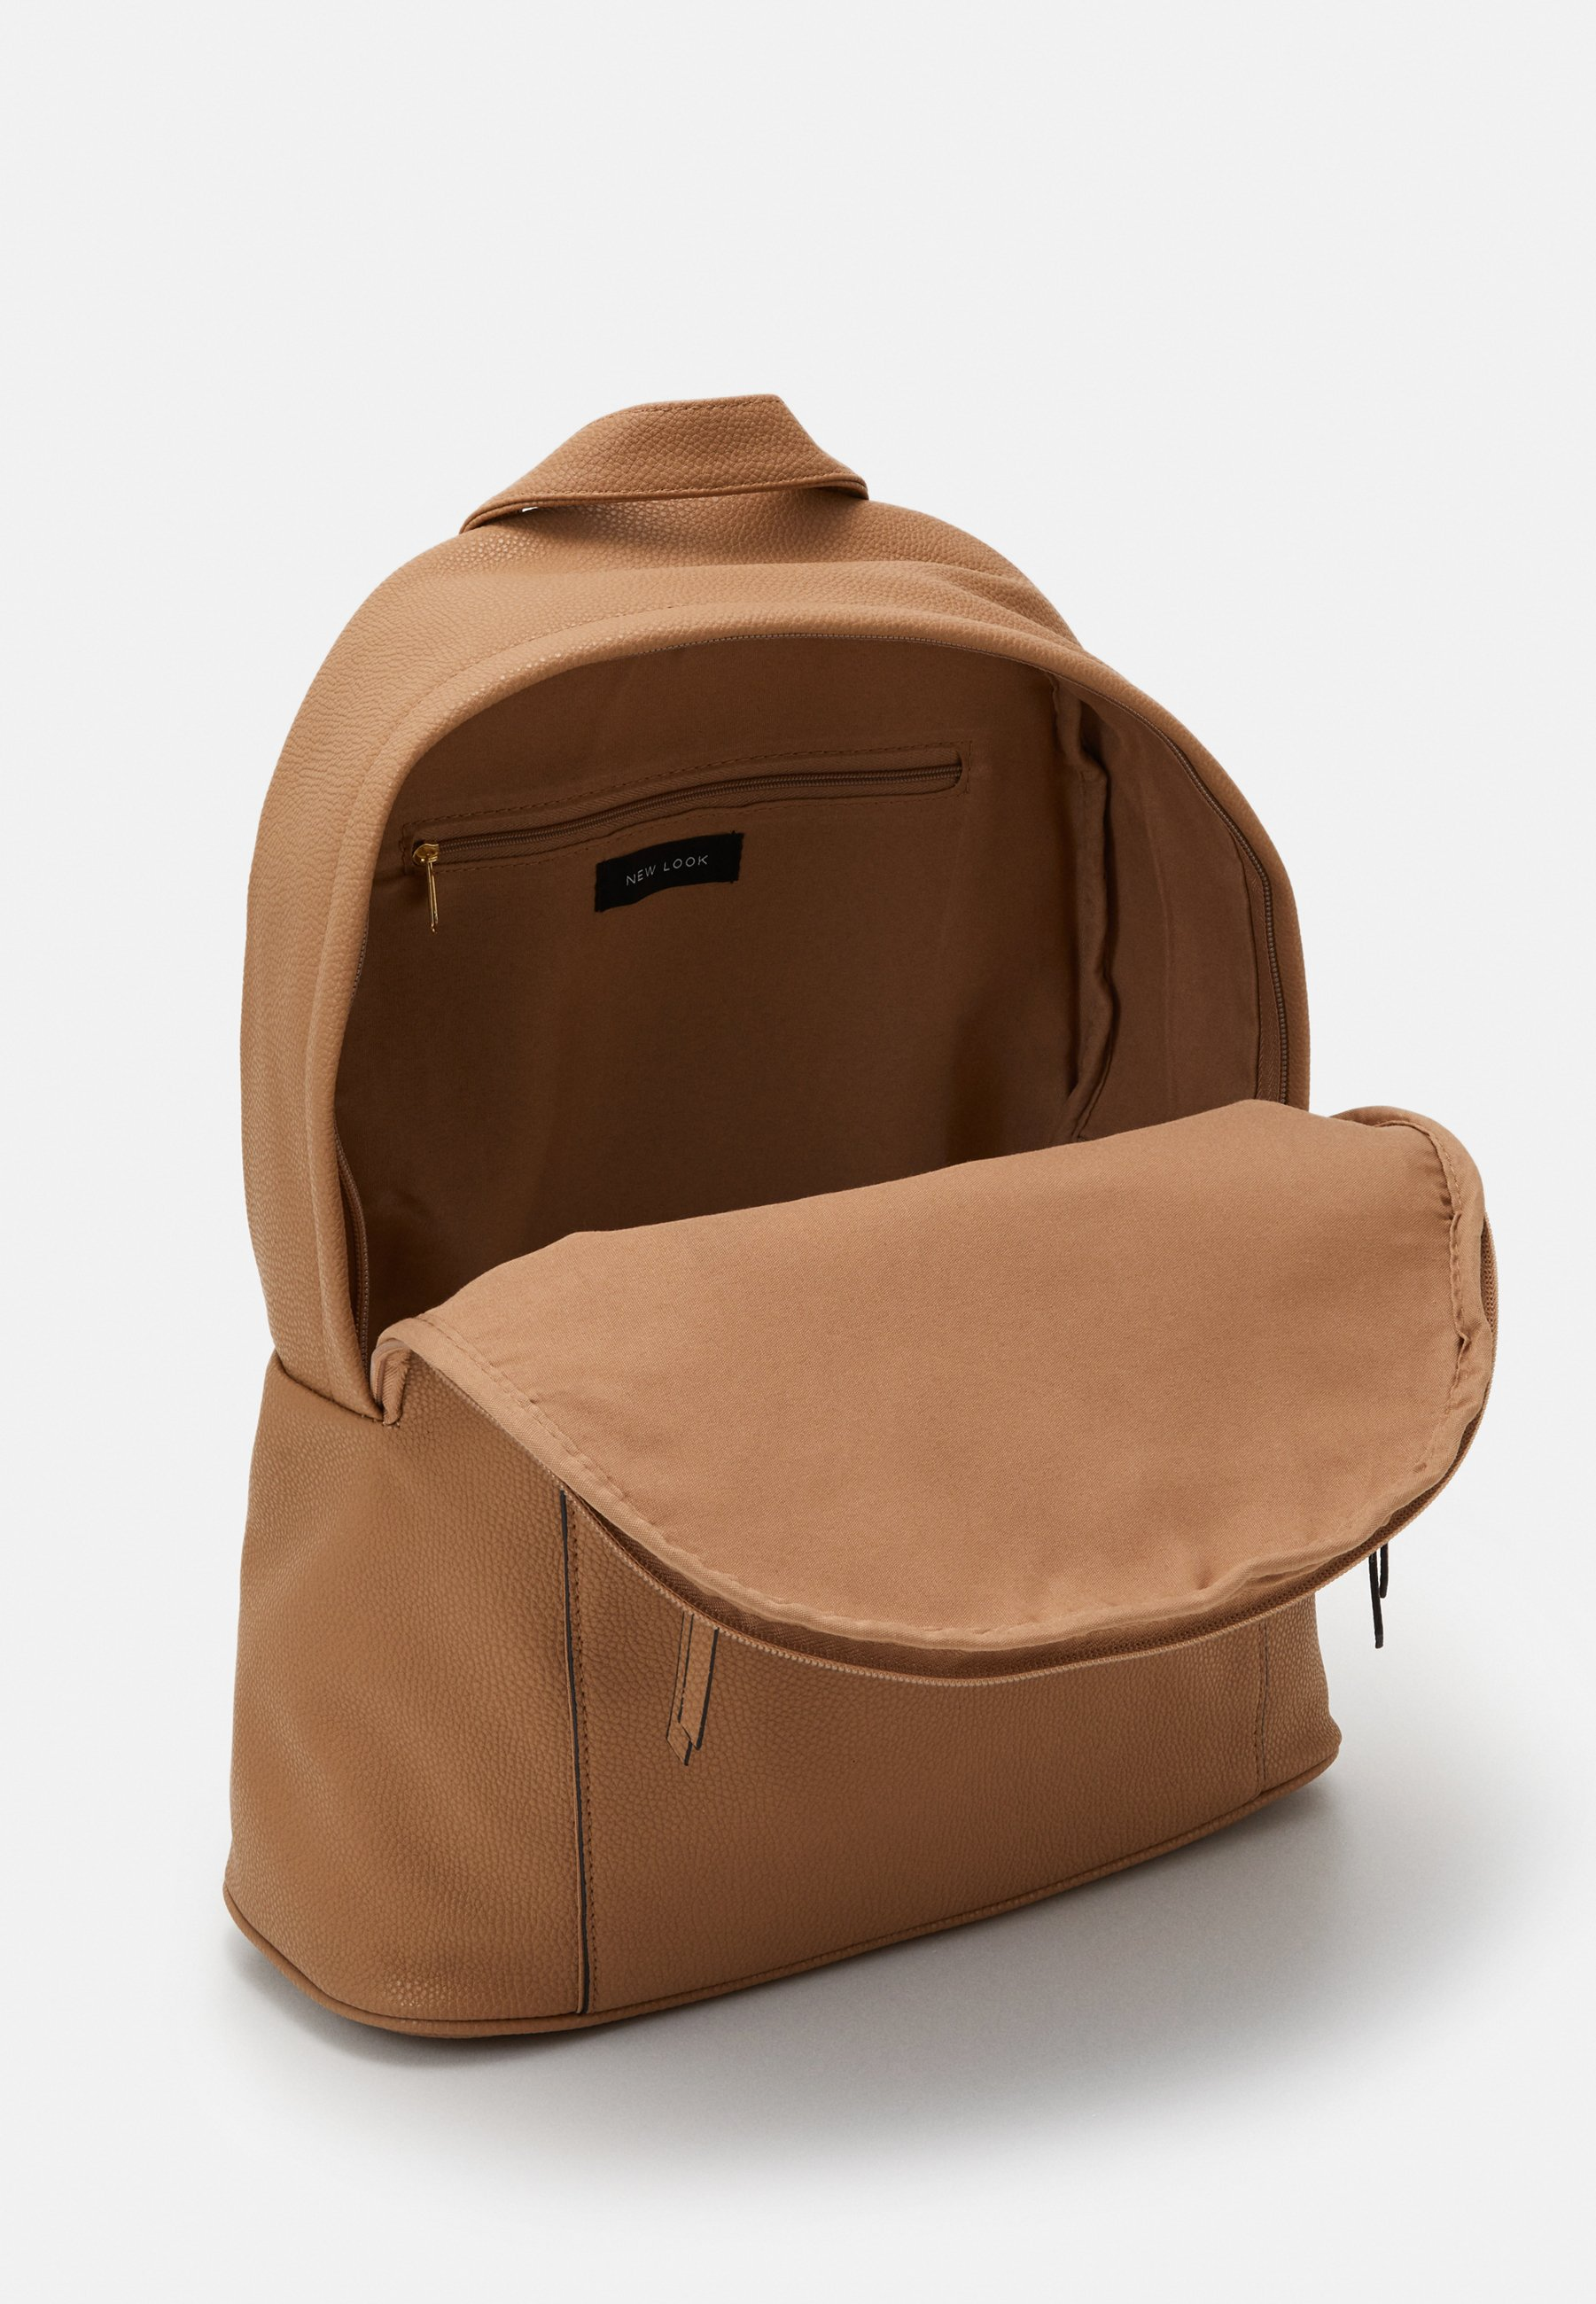 New Look Clive Zip Around Backpack - Tagesrucksack Camel